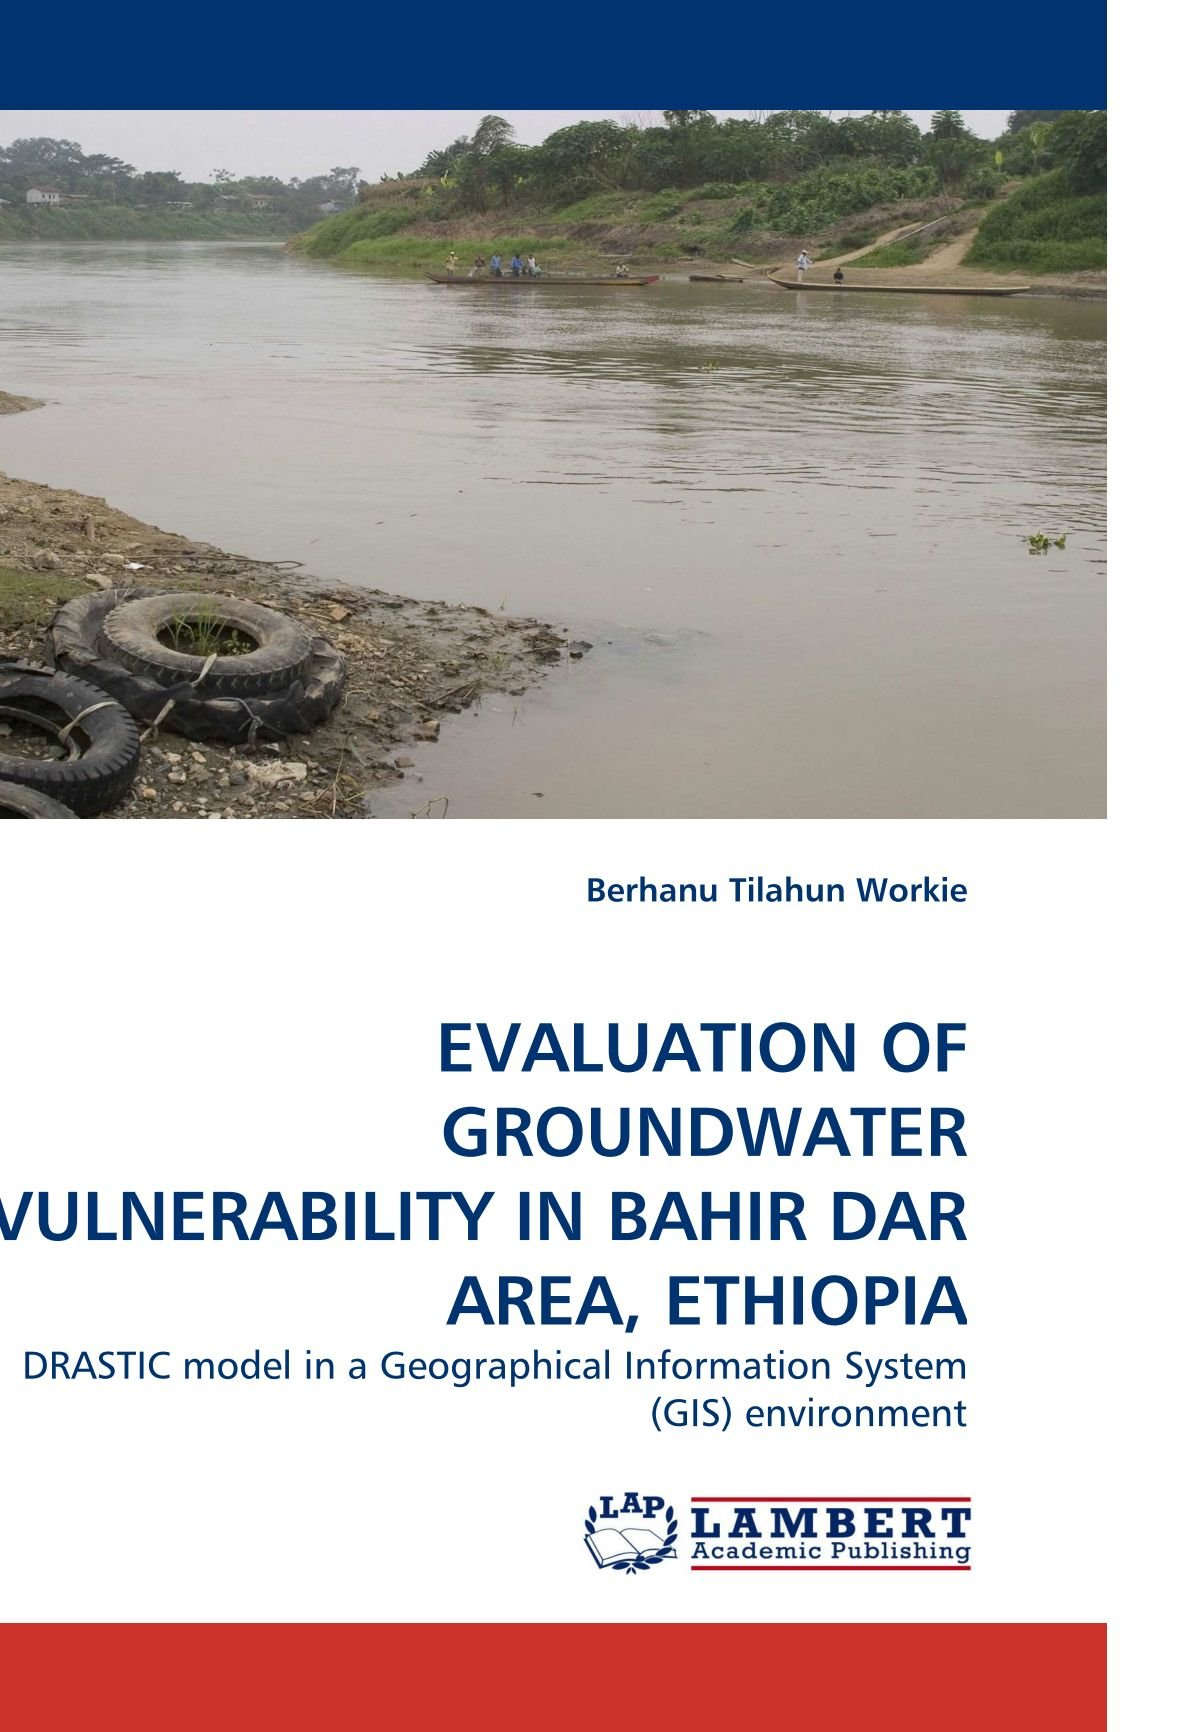 EVALUATION OF GROUNDWATER VULNERABILITY IN BAHIR DAR AREA, ETHIOPIA: DRASTIC model in a Geographical Information System (GIS) environment PDF